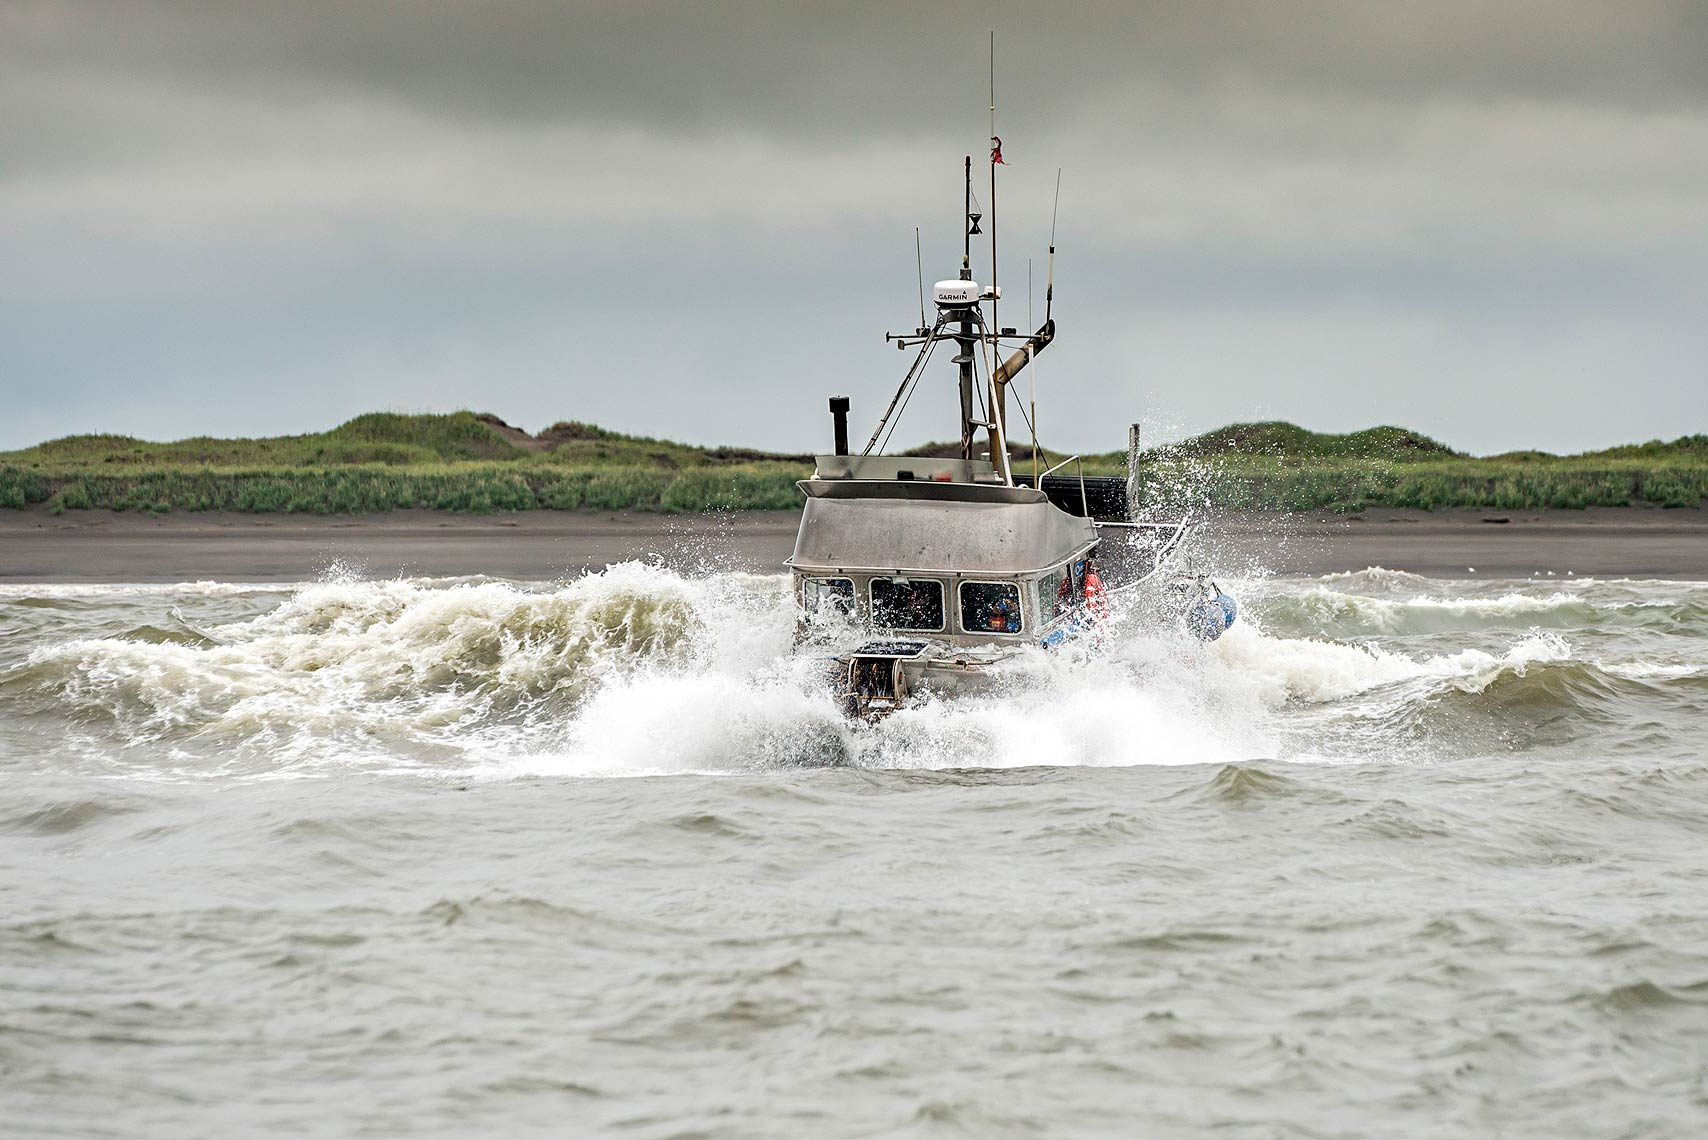 A gillnetter crosses through the breakers to make it out   to the fishing grounds.  Bristol Bay is interweaved with many sandbars and   shoals, and fishermen use the area's many channels to enter and exit   protected waters to access the fishing grounds.